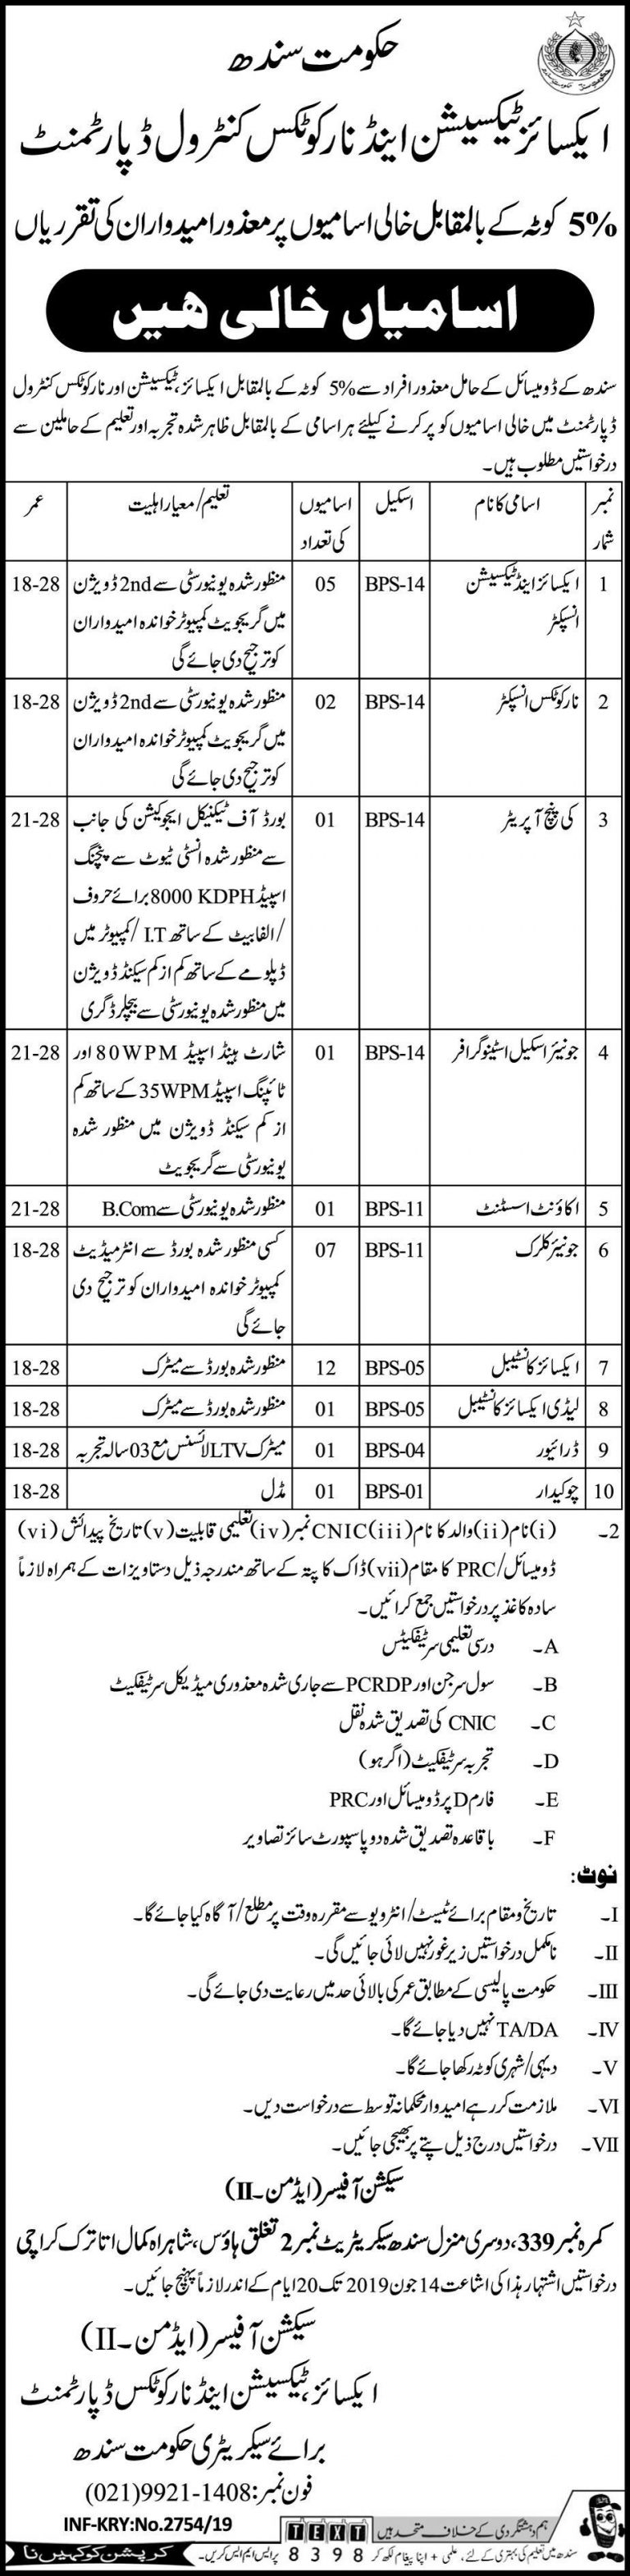 Excise & Taxation Department Sindh Jobs 2019 Latest Advertisement